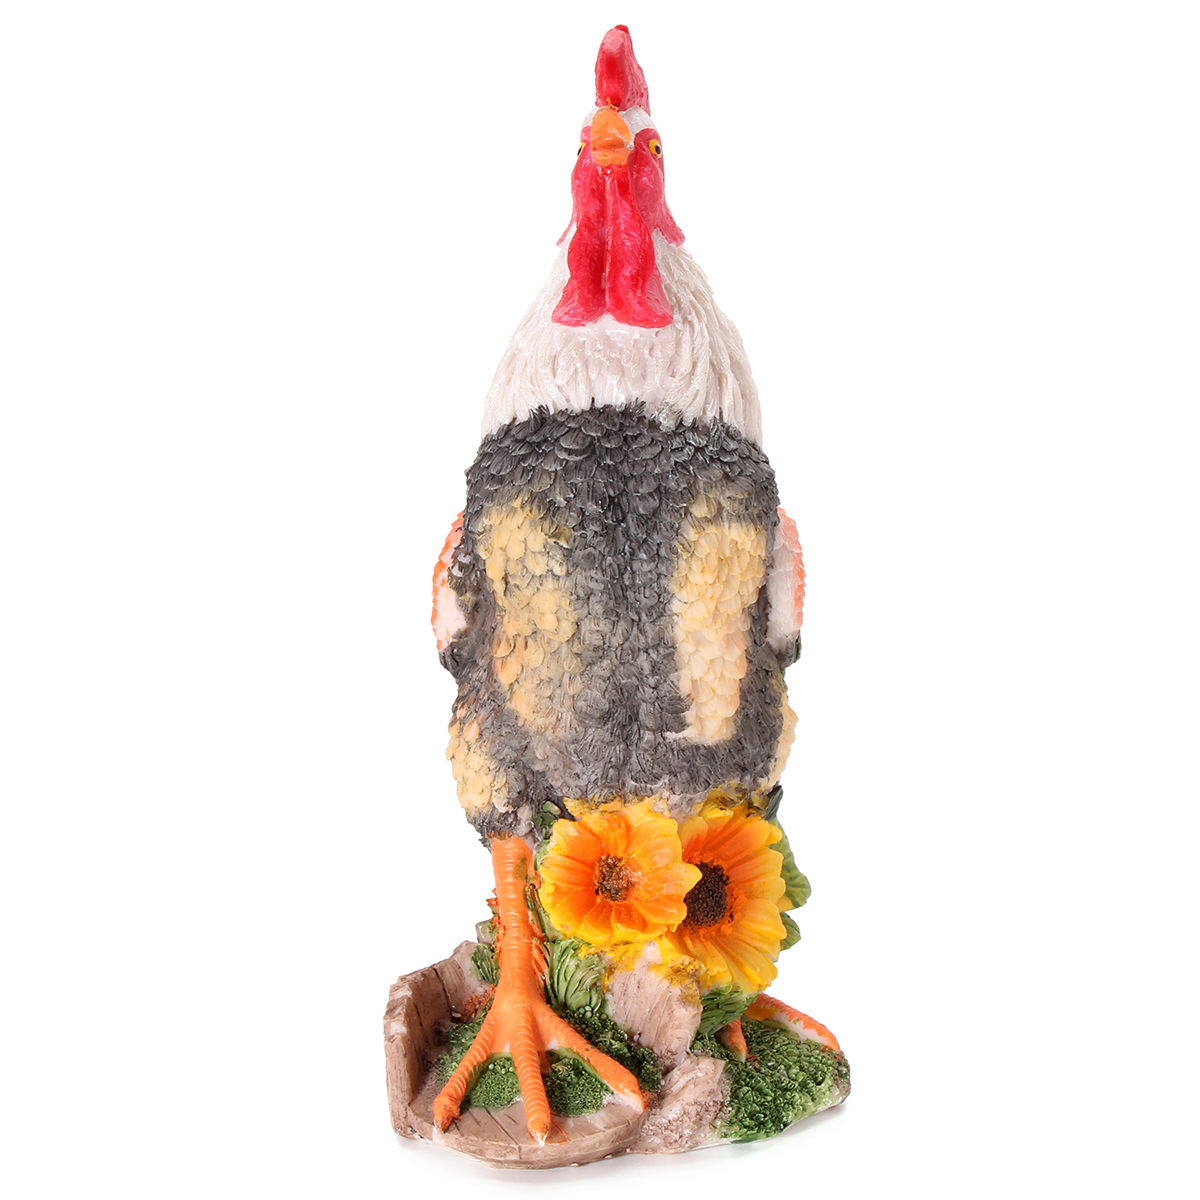 Colorful Resin Rooster Garden Animal Statue Ornament Farmyard Sculpture Decorations